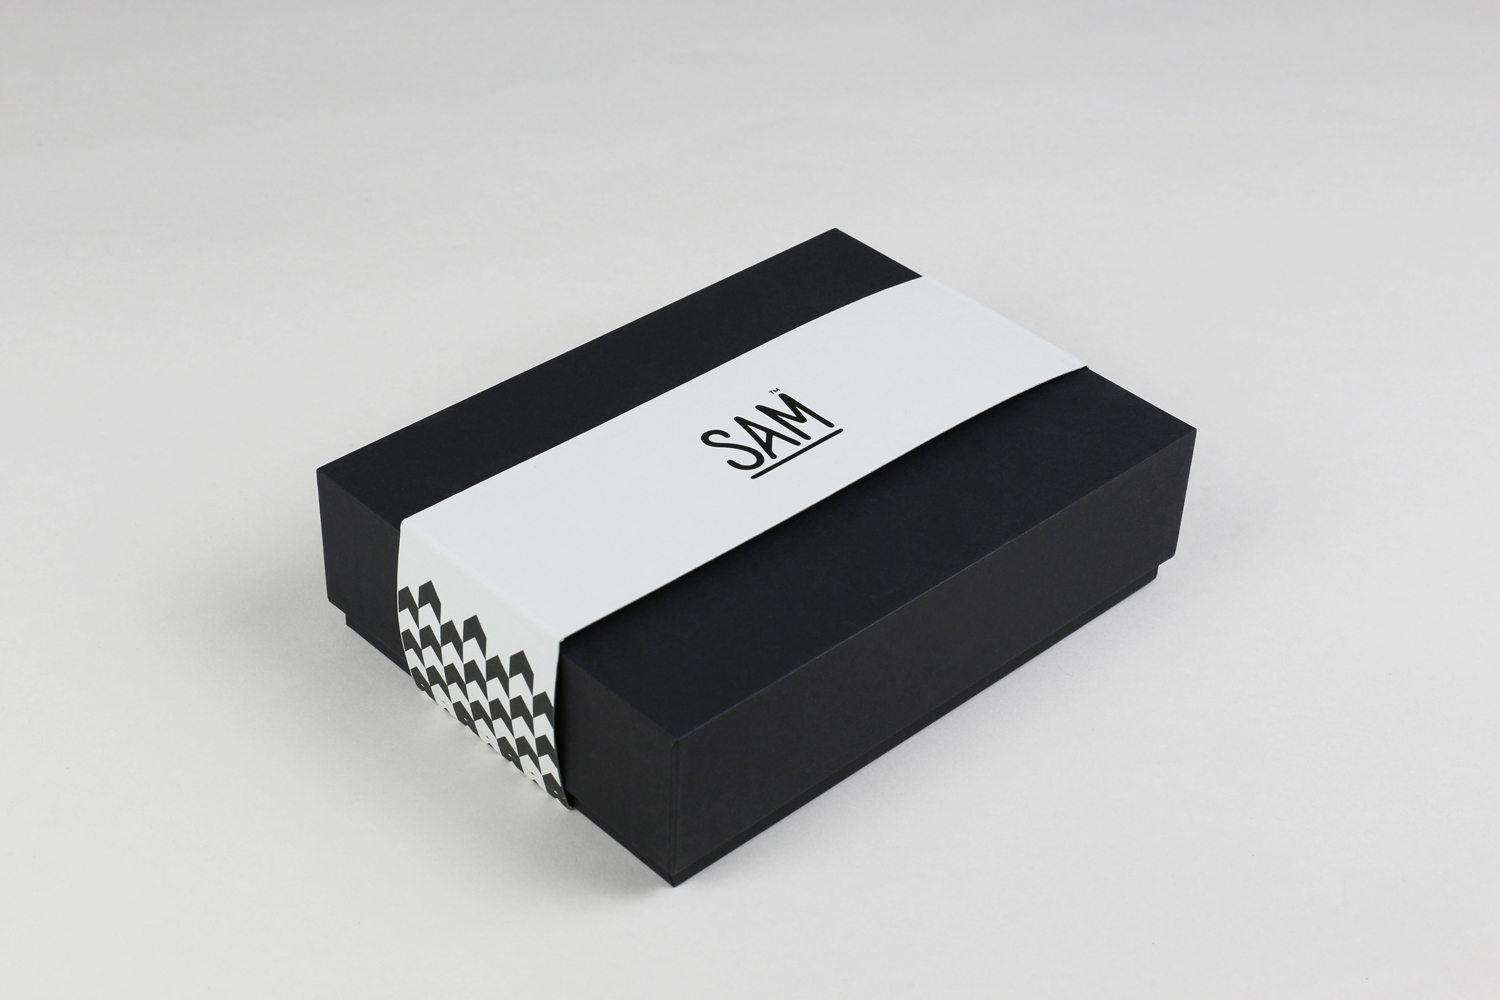 Progress Packaging Manufacture Photography Media Box Mailer Bespoke Colorplan Recyclable Eco Friendly Design Mindfully Sourced 5